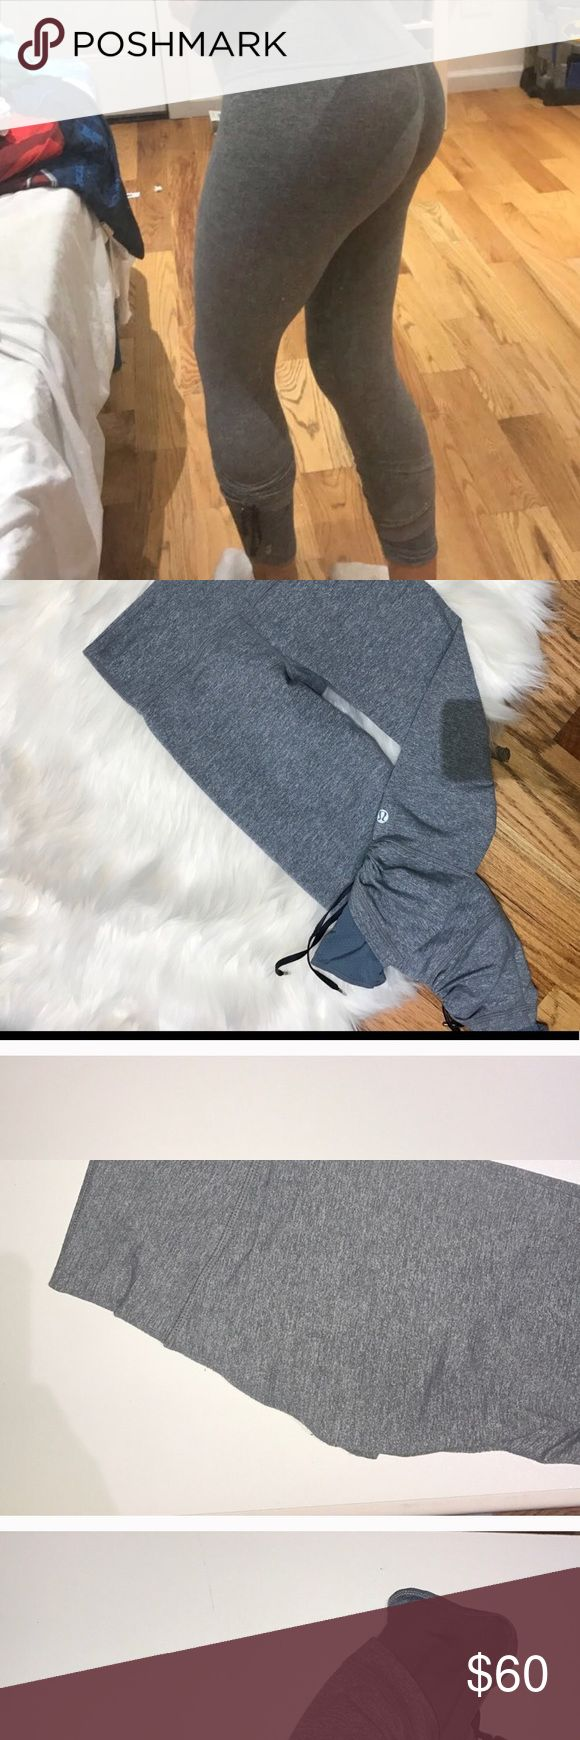 Grey lululemon leggings Rouched meshed legging on the bottom   In good condition. lululemon athletica Pants Leggings